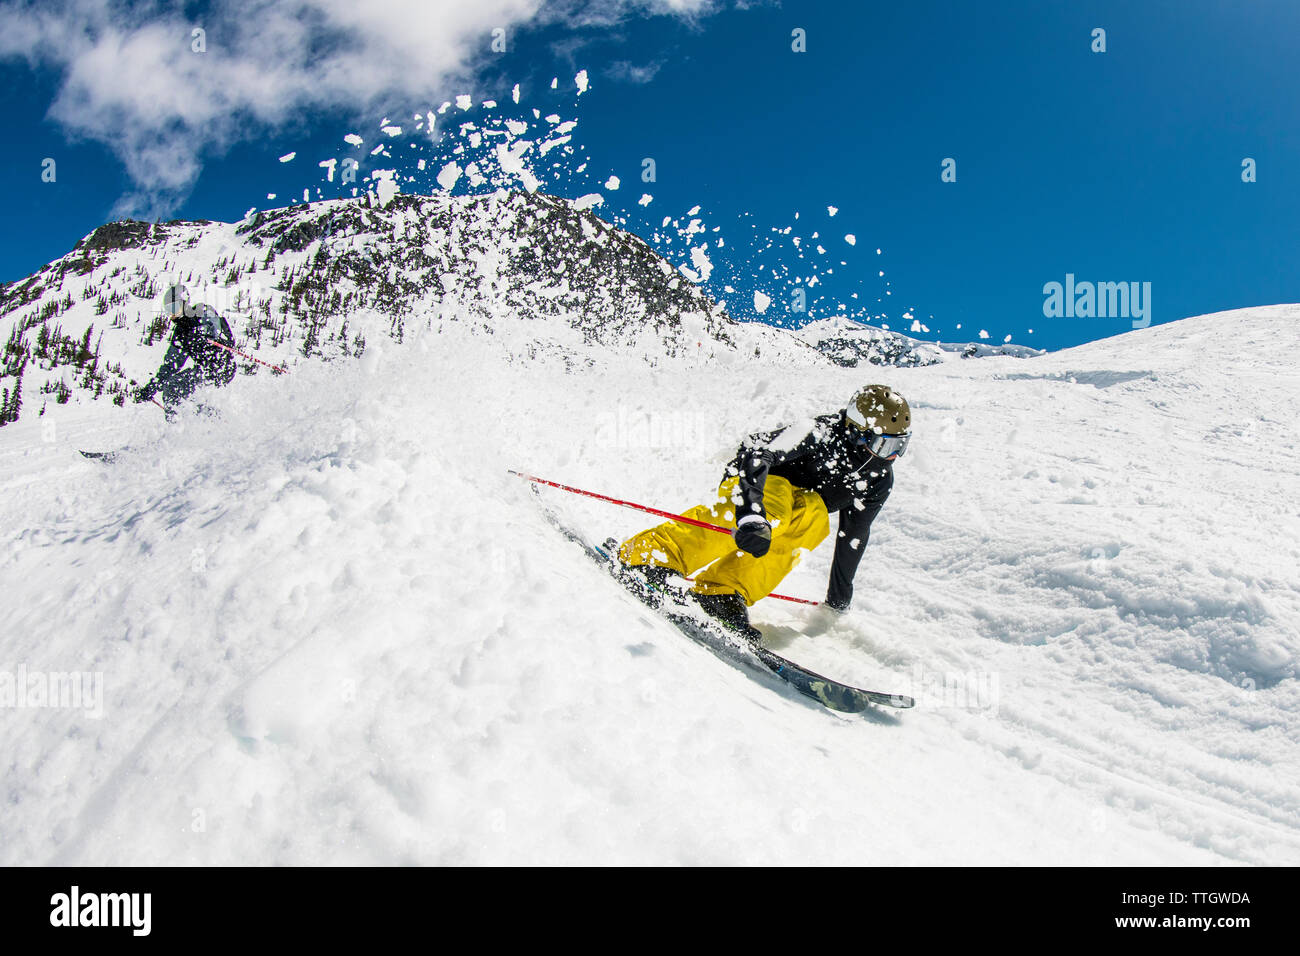 A man skis a banked course in the terrain park at Whistler Blackcomb. - Stock Image